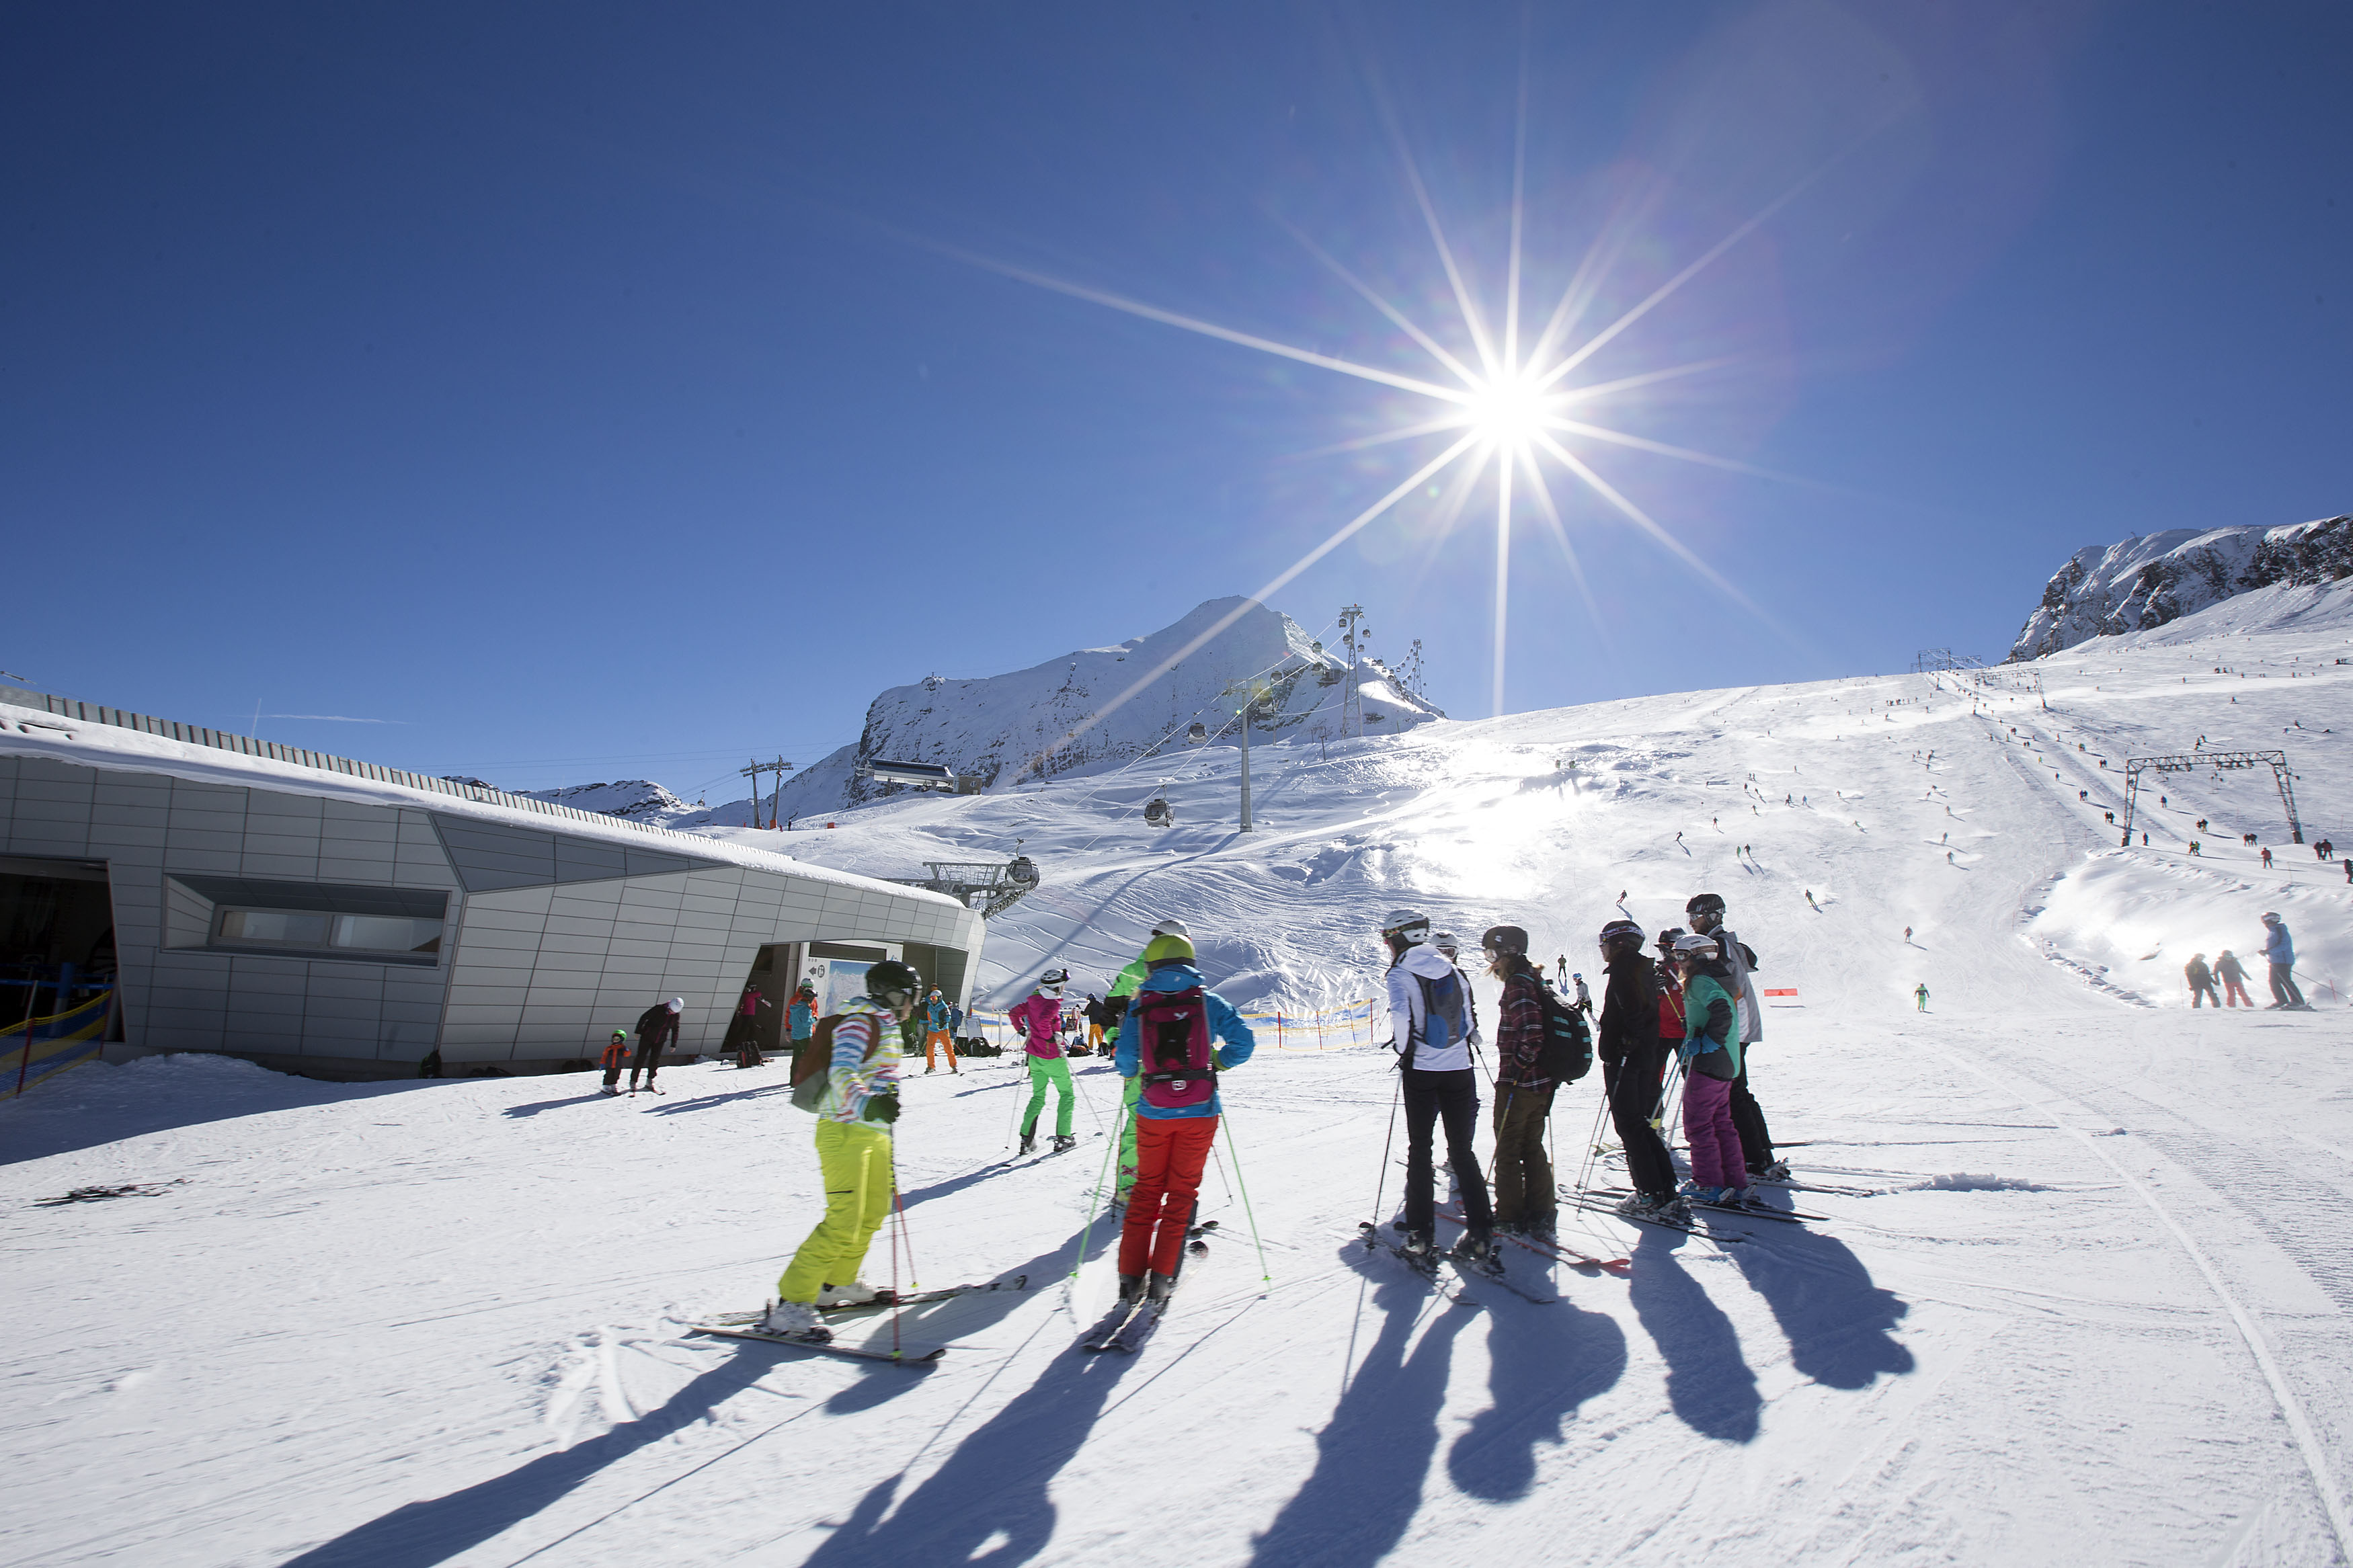 Privat - Ski, 5 Tage/Days, 2h Nachmittag/Afternoon